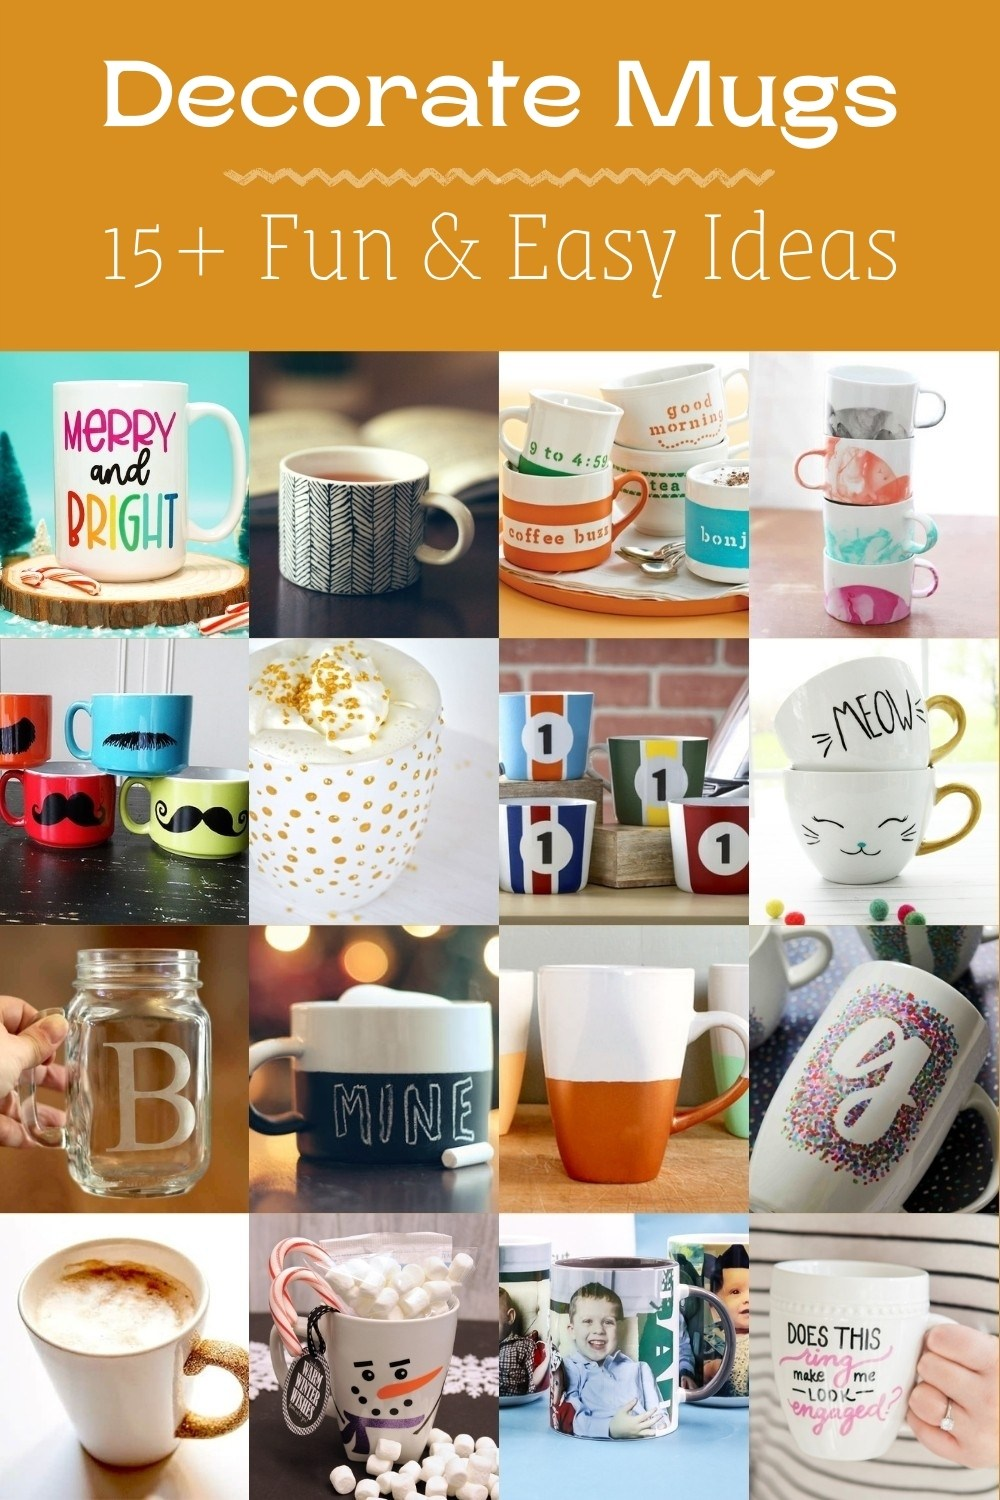 Over 15 Ways to Decorate Mugs